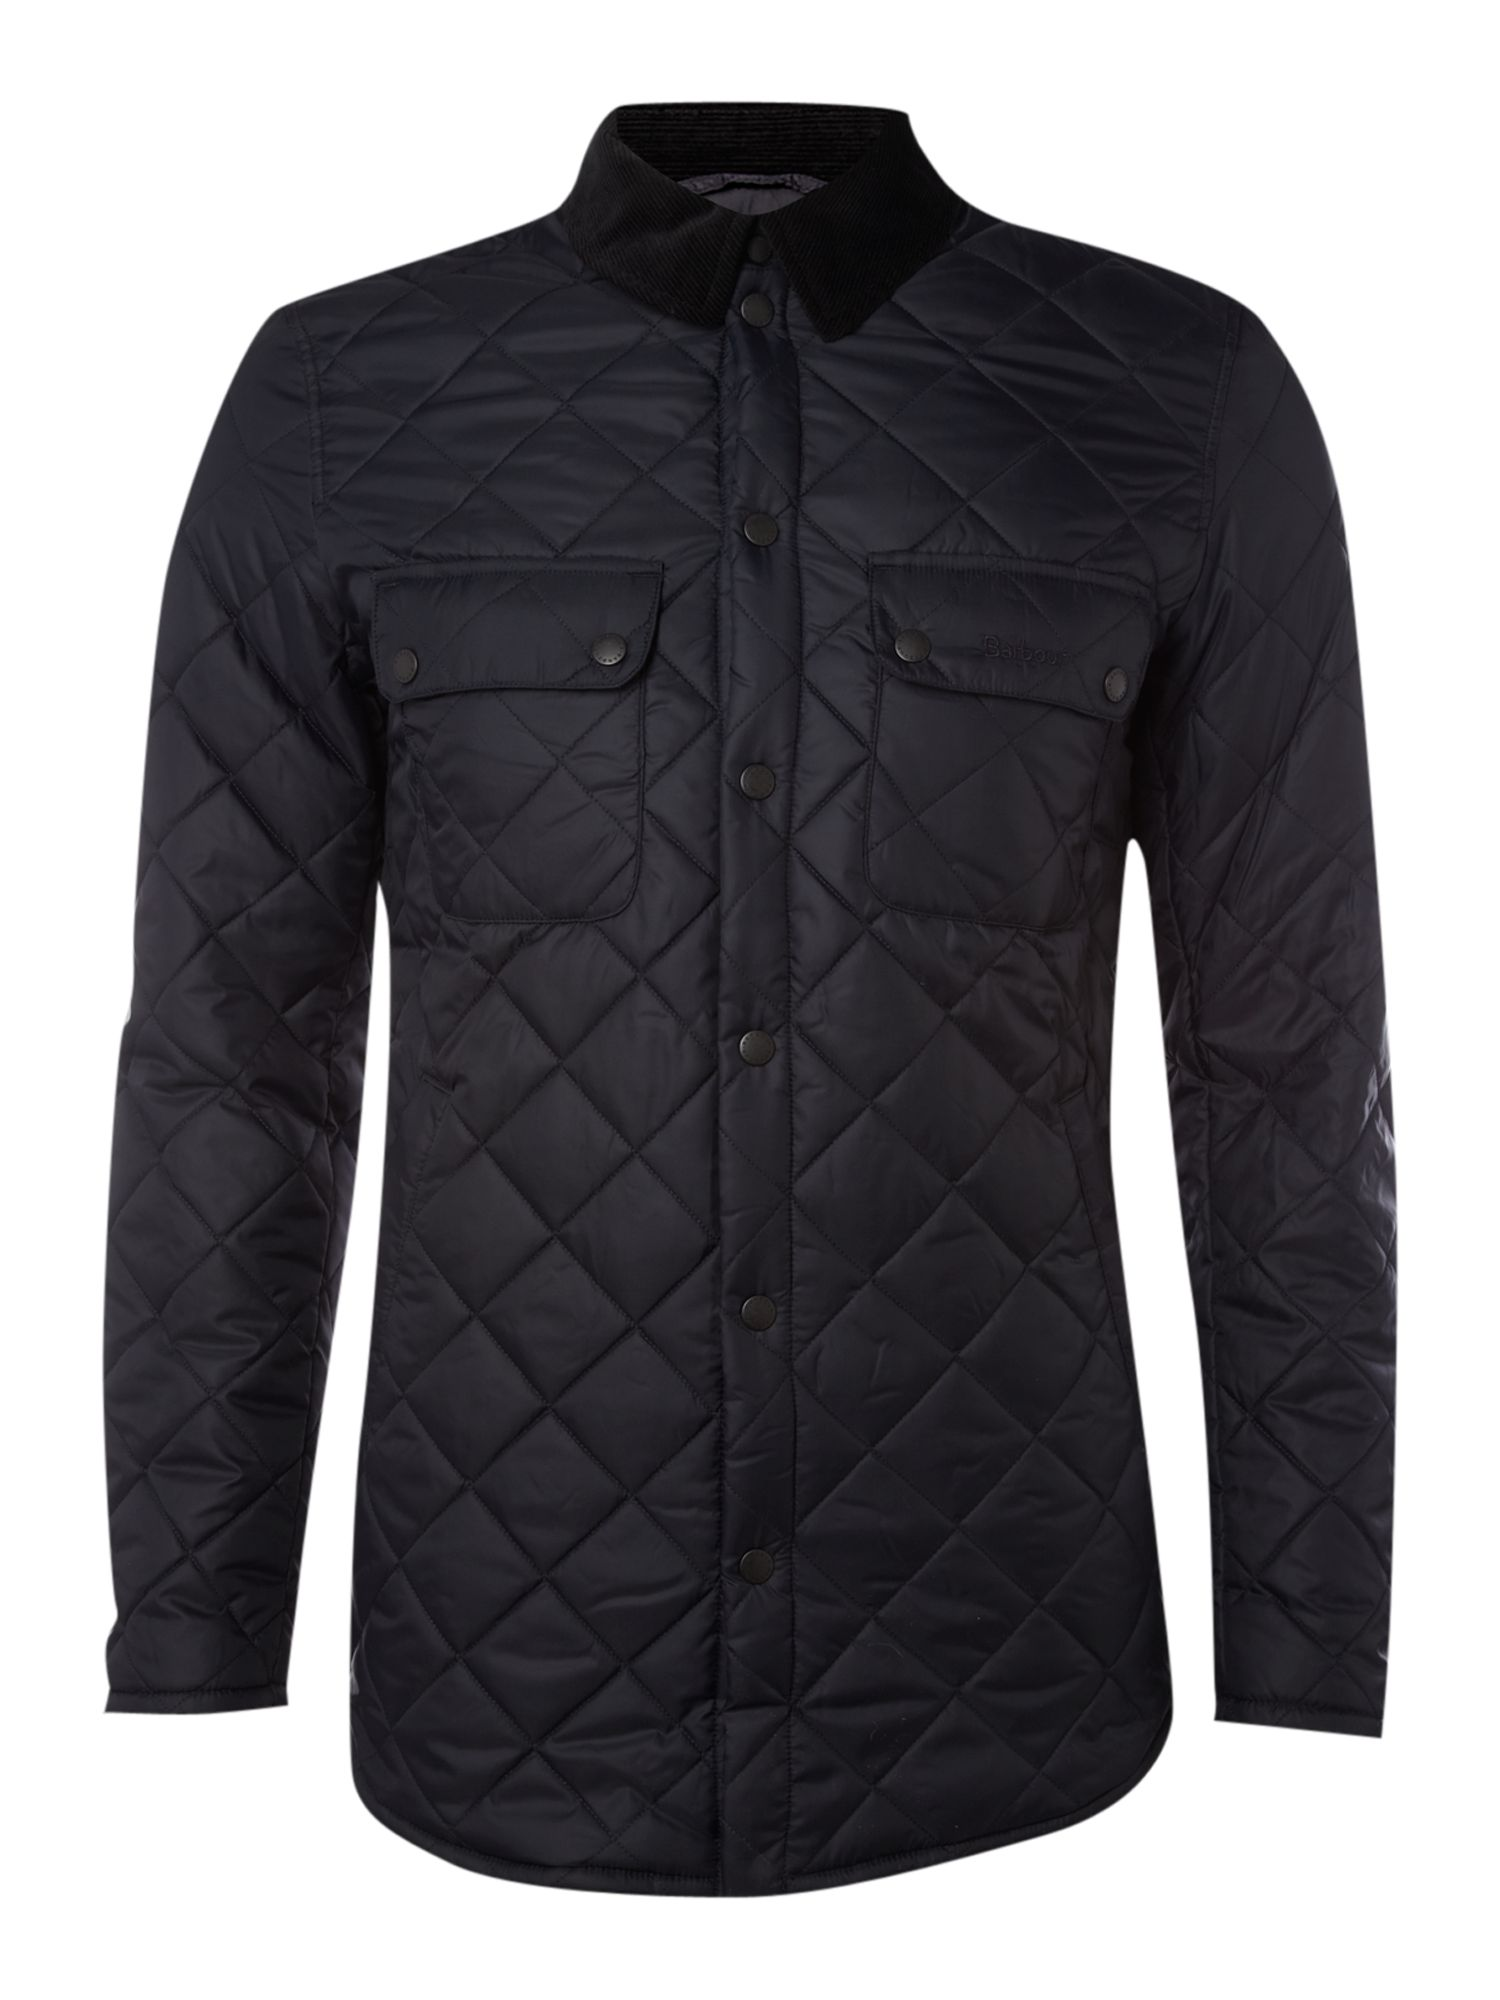 Barbour Akenside slim fit quilted jacket